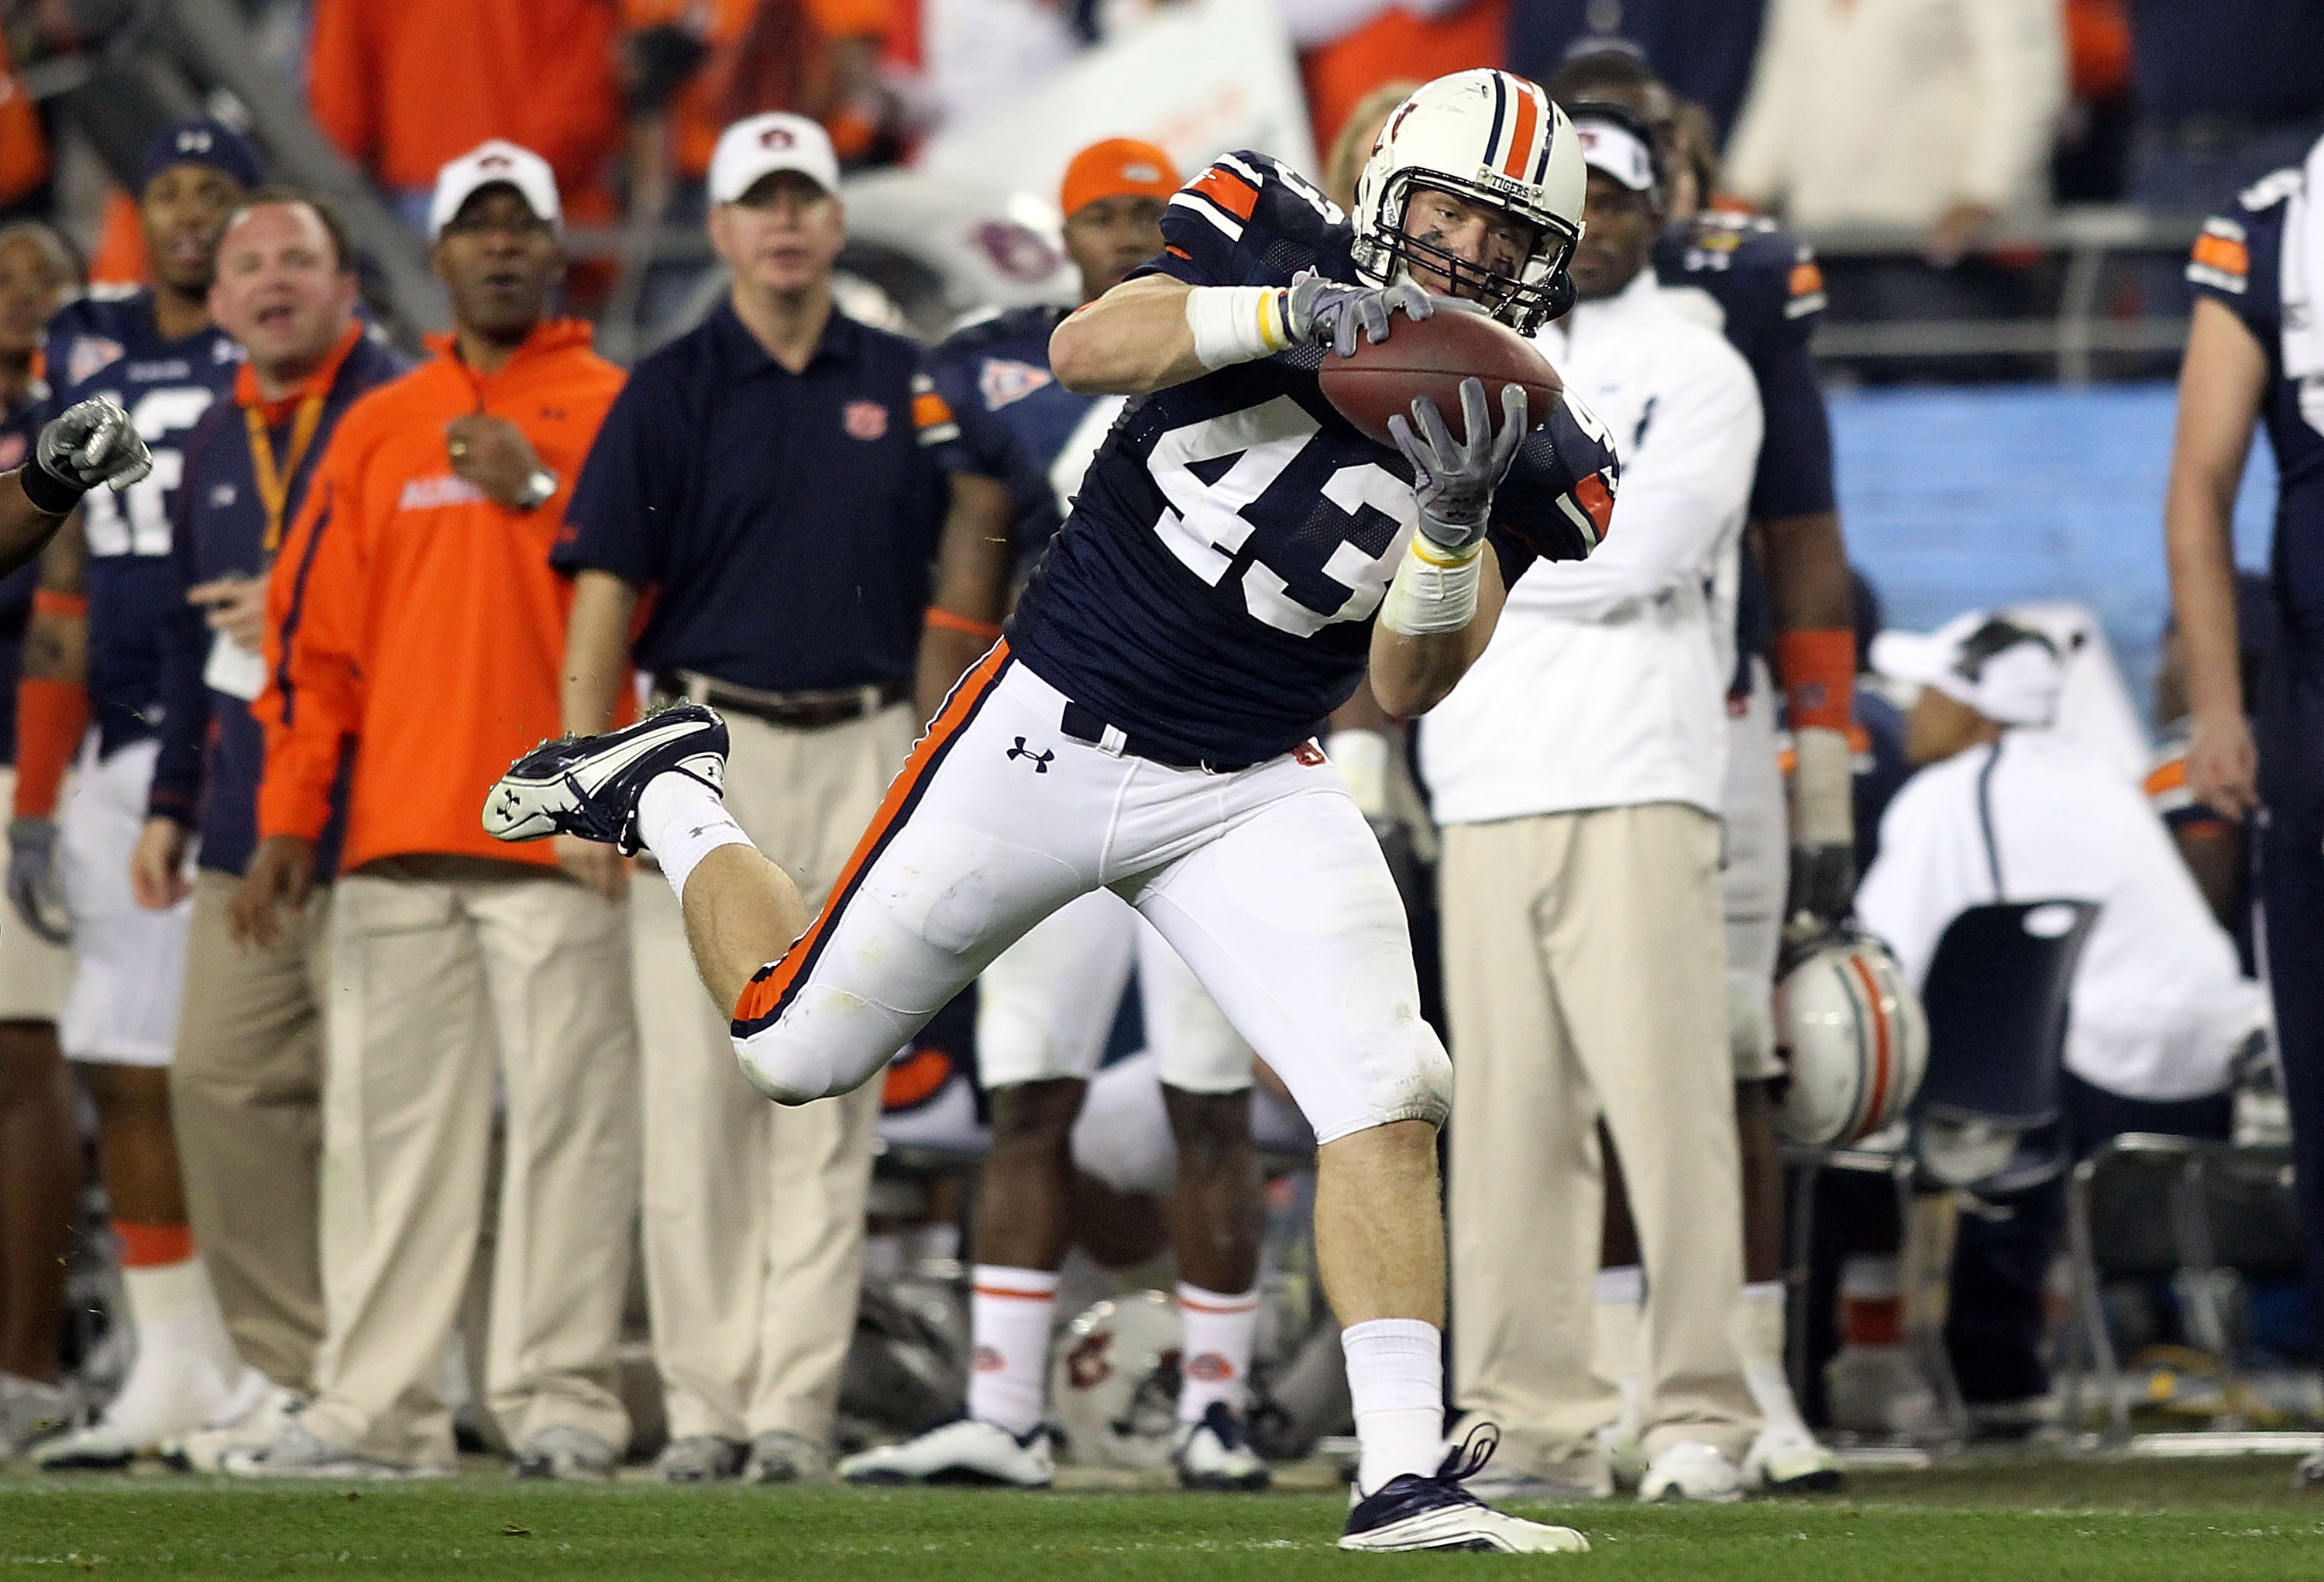 GLENDALE, AZ - JANUARY 10:  Philip Lutzenkirchen #43 of the Auburn Tigers catches a 39-yard reception in the third quarter against the Oregon Ducks during the Tostitos BCS National Championship Game at University of Phoenix Stadium on January 10, 2011 in